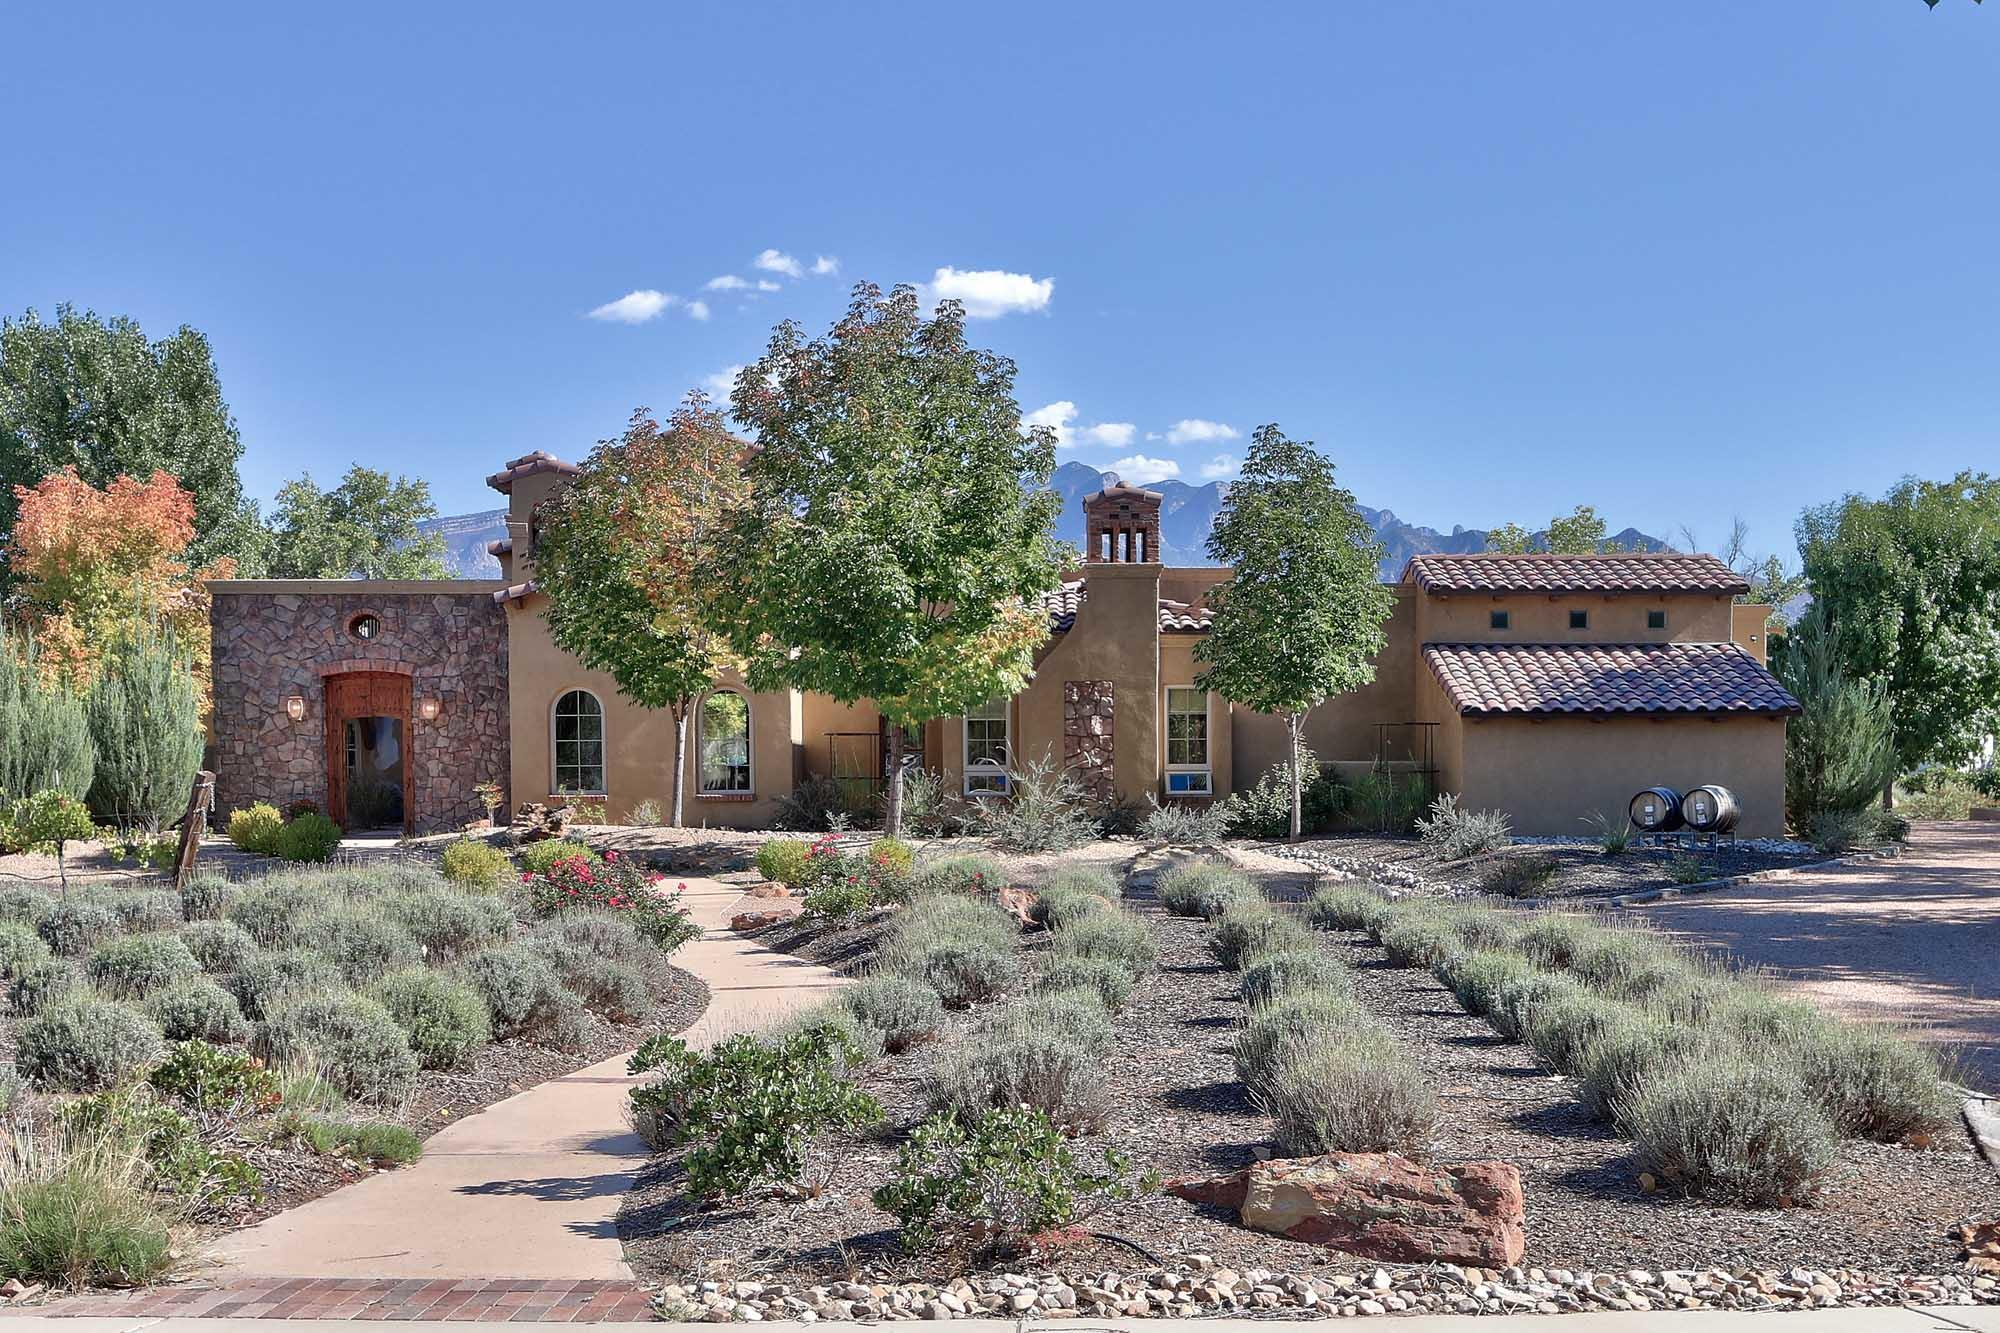 Exquisite home in in the Rio Grande Bosque. Set in it's own private vineyard designed to grow and produce your own wine. Extraordinary Tuscan design loaded with  luxury features. Gorgeous gourmet kitchen features a lovely morning room. Picturesque views of the mountains and bosque enhance most rooms and outdoor spaces.  Great Room features open truss ceilings and Cantera marble fireplace. Private, separate guest wing. Master suite features intimate patio and age in place elegant bath.  Incredible second story view deck for amazing sunset and mountain views.Located in a gated compound of high-end homes.  Convenient commute to both Santa Fe and Albuquerque.